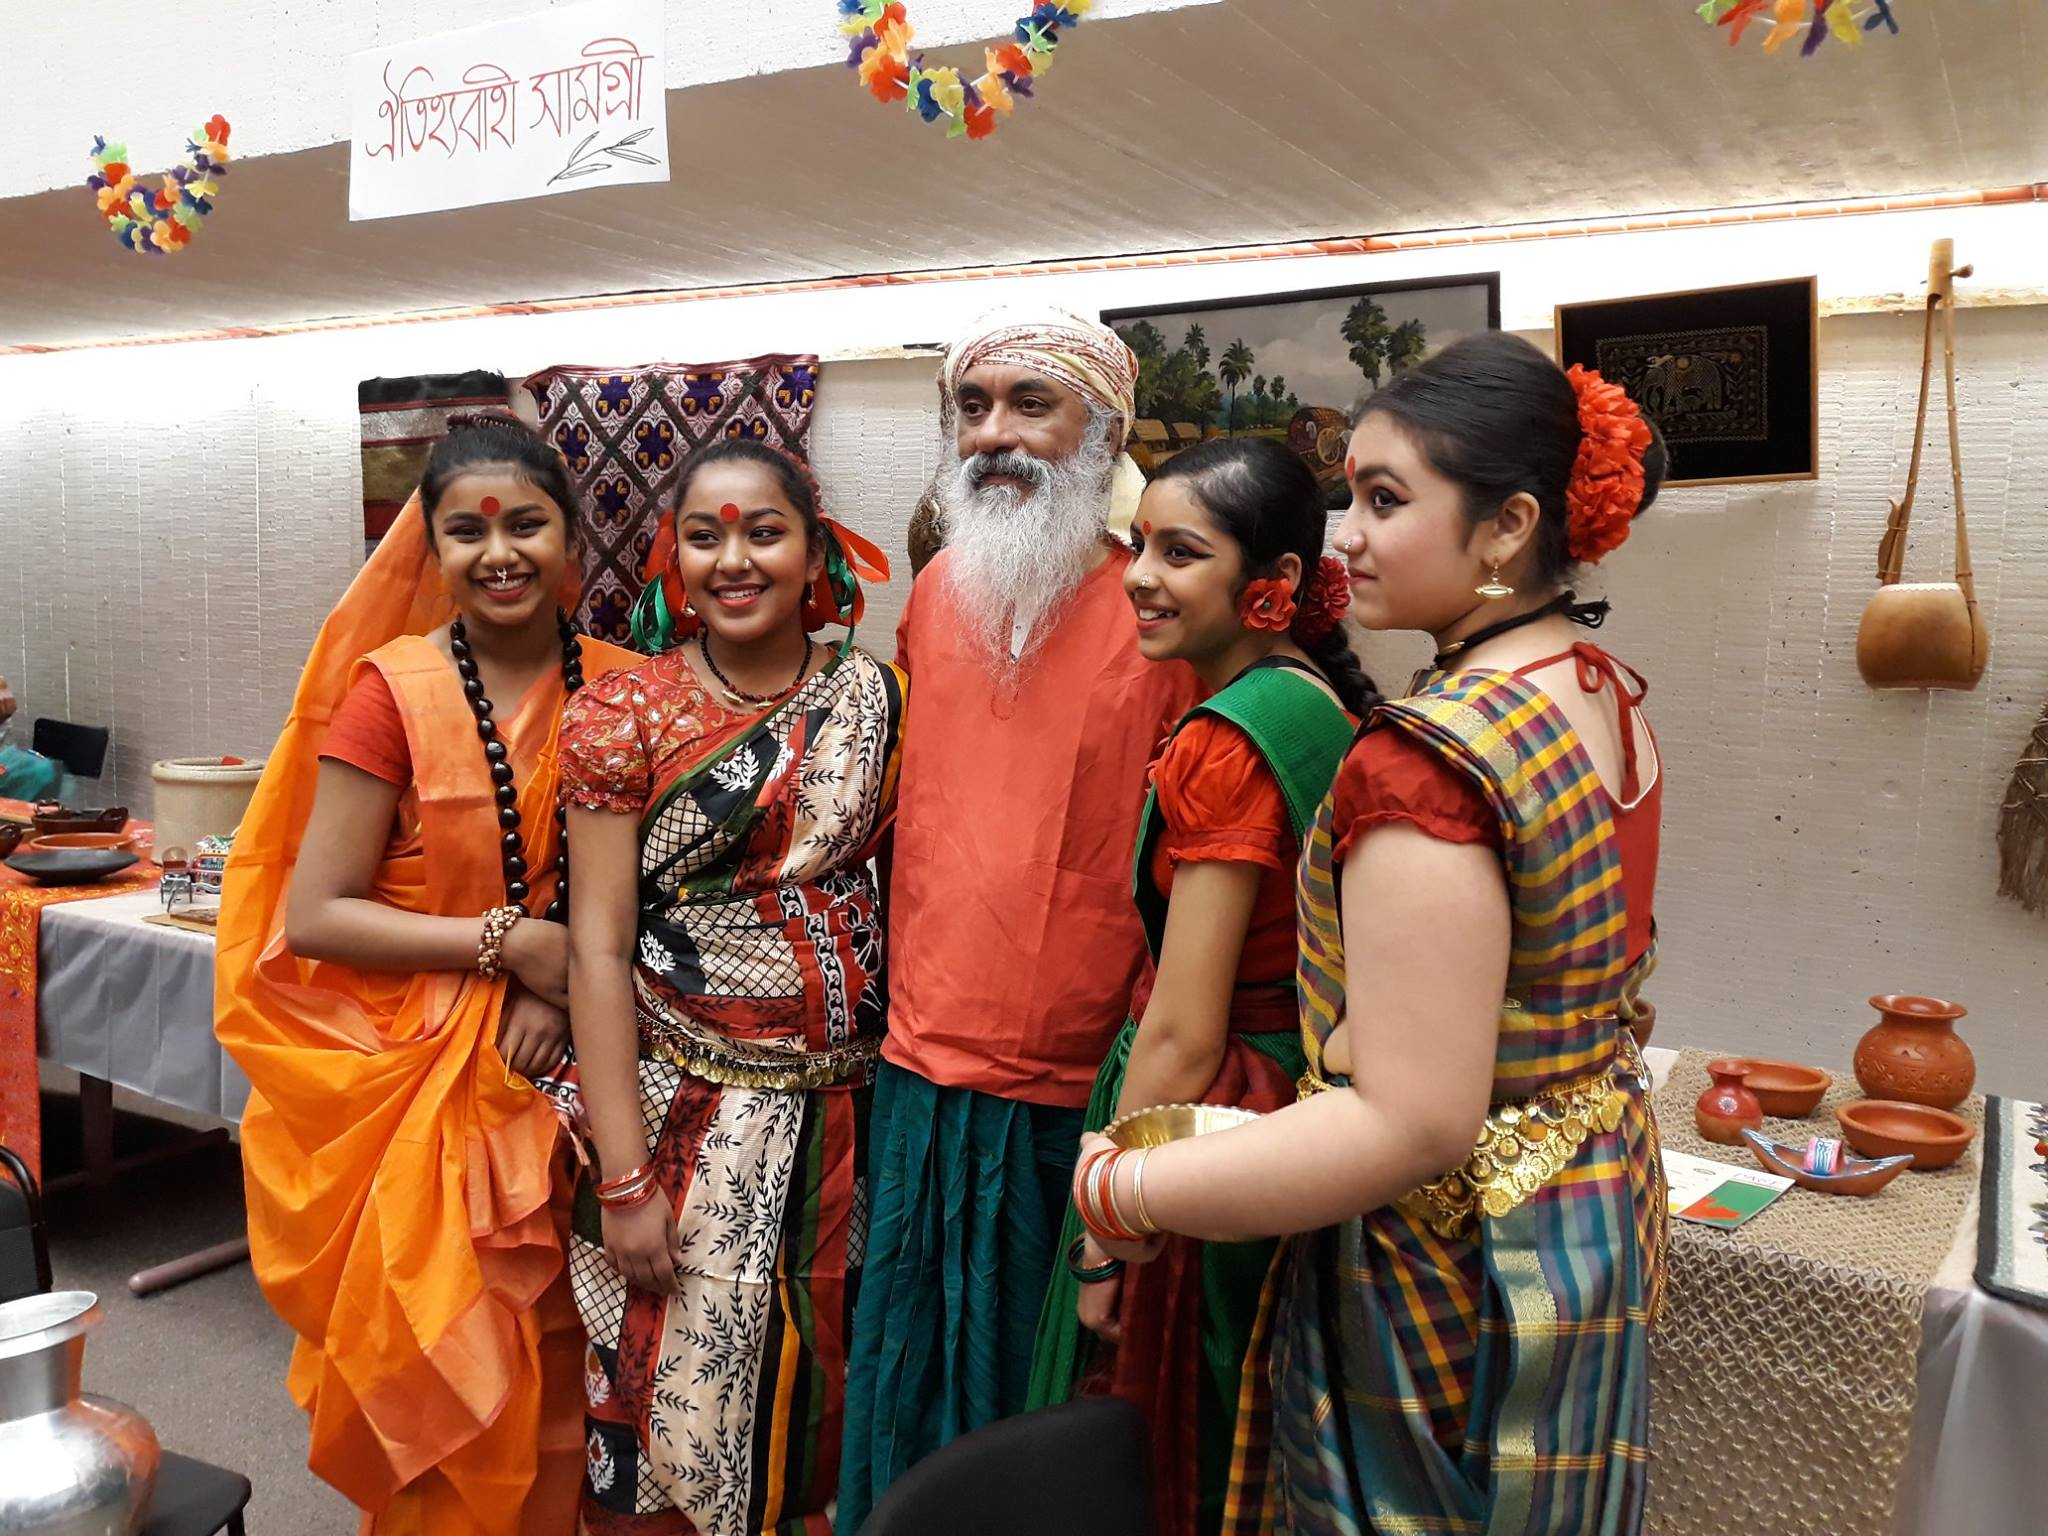 Participants and performers